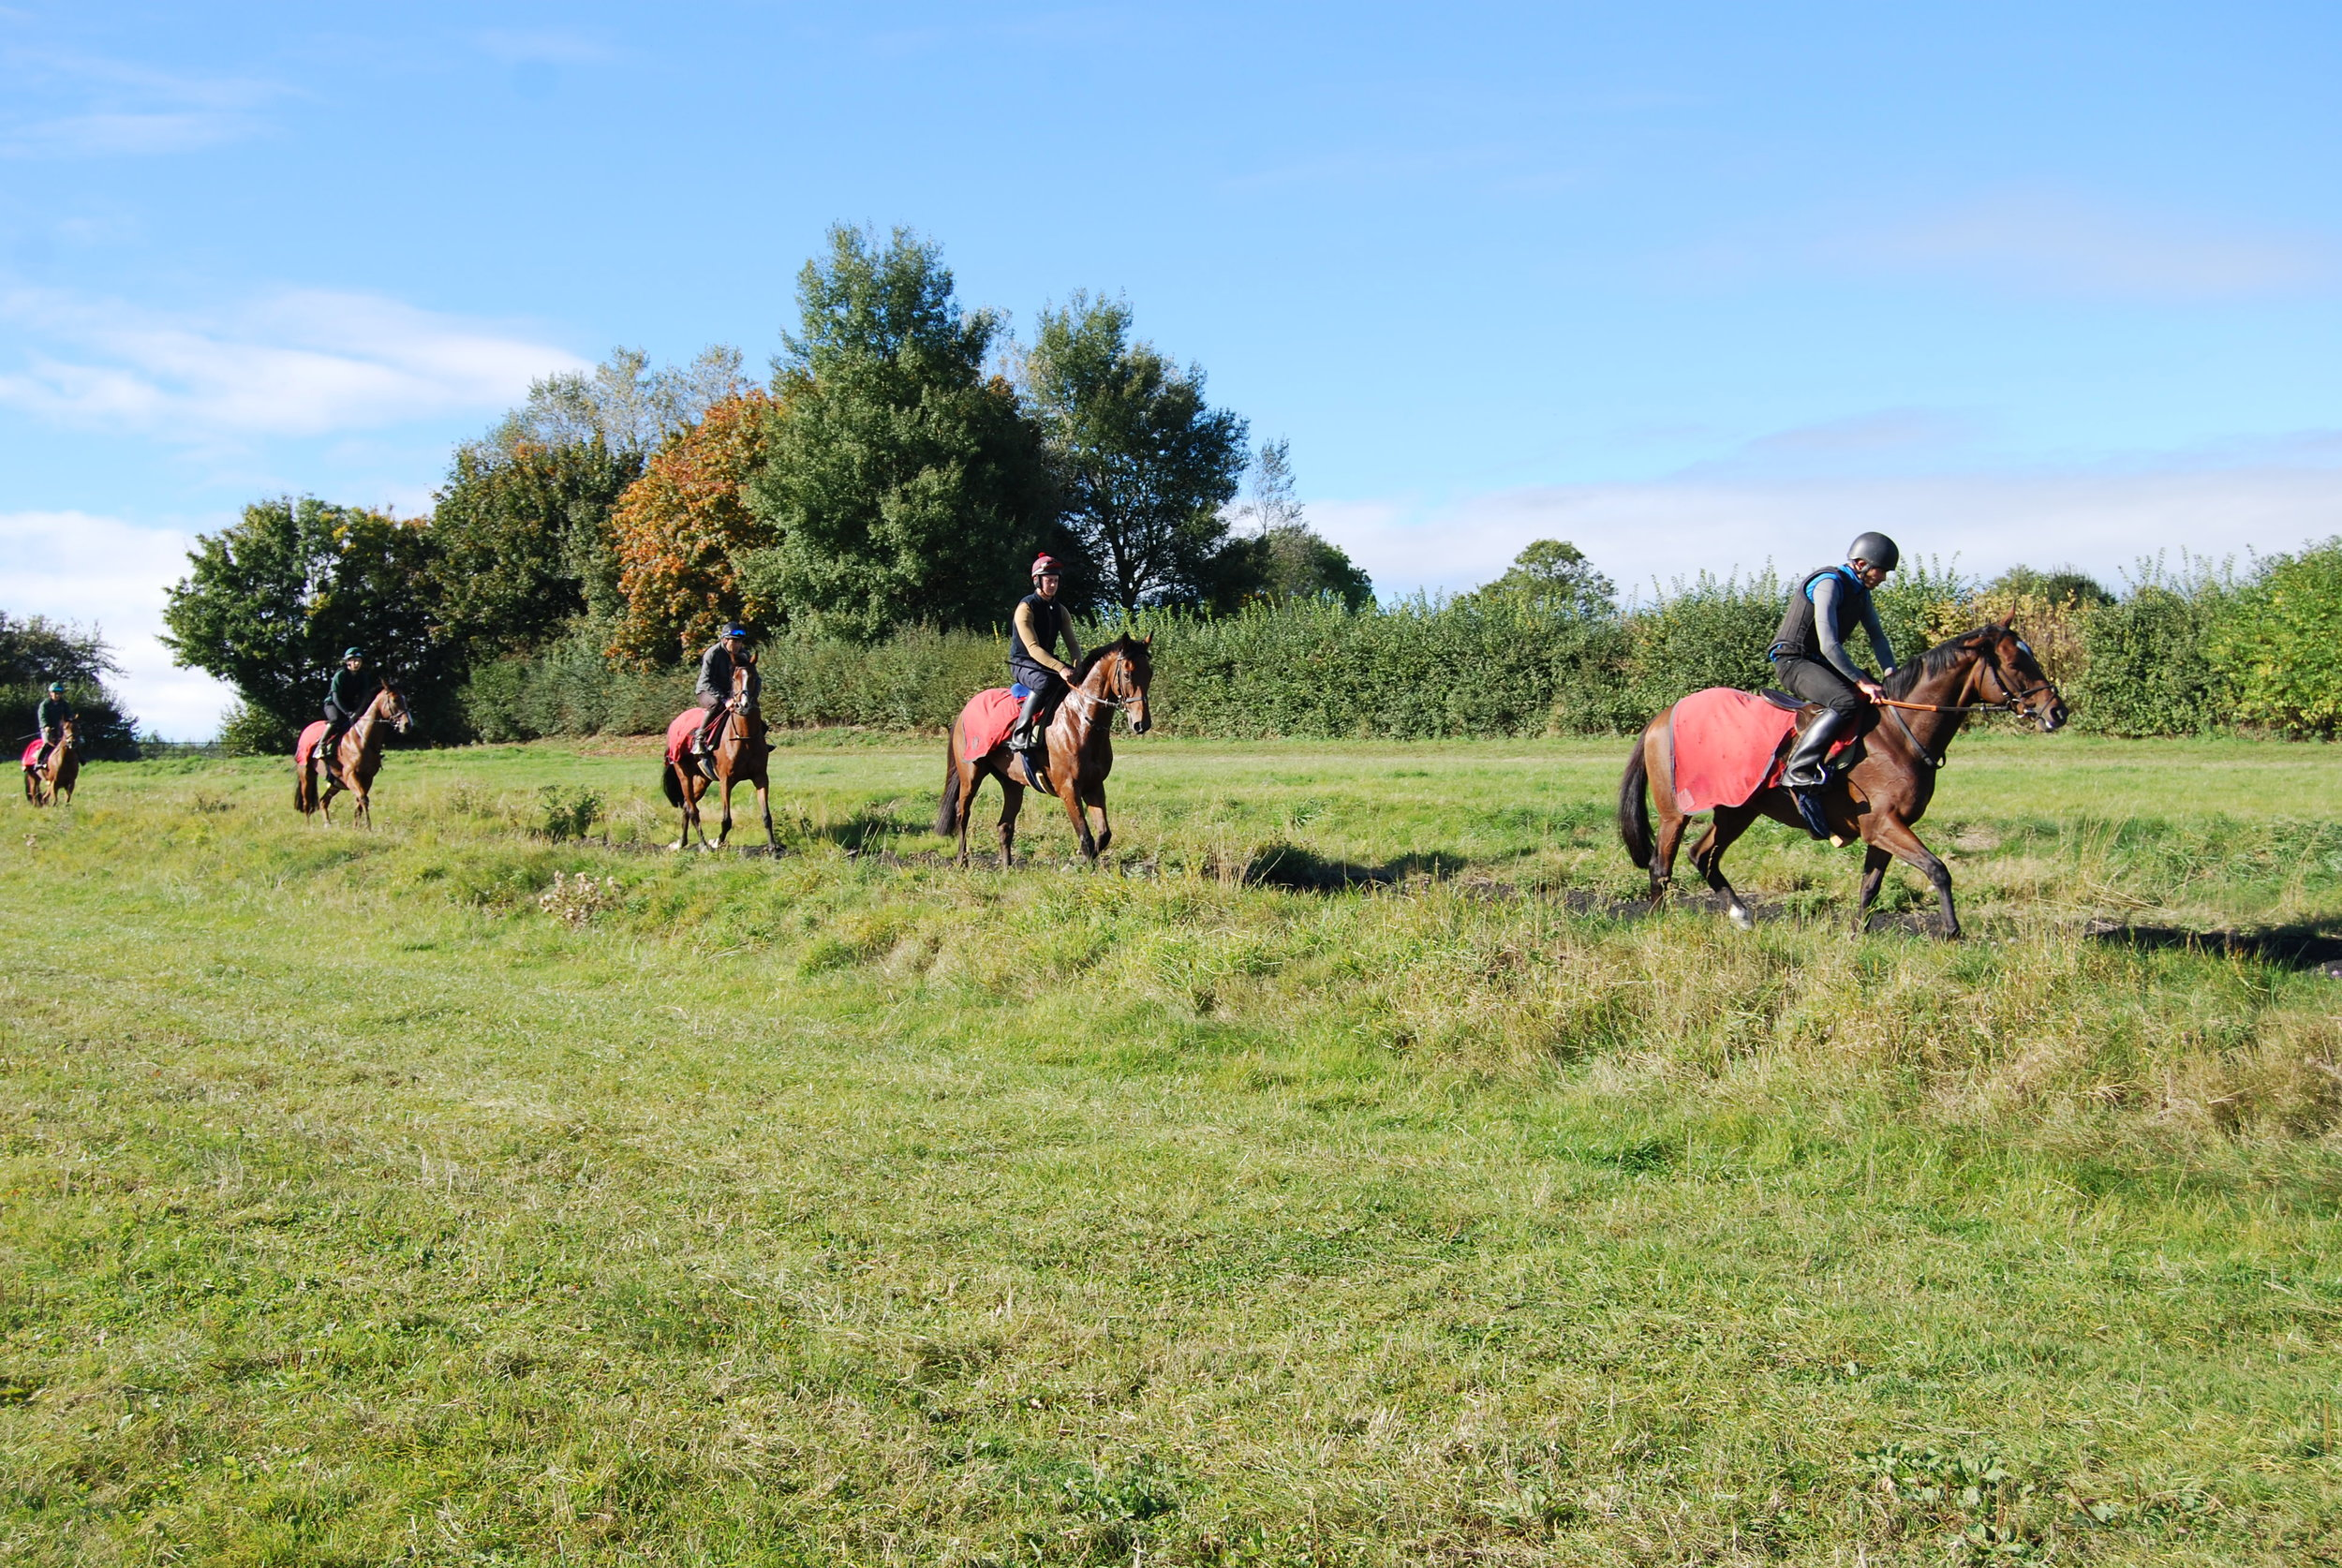 Cool down on the gallops.